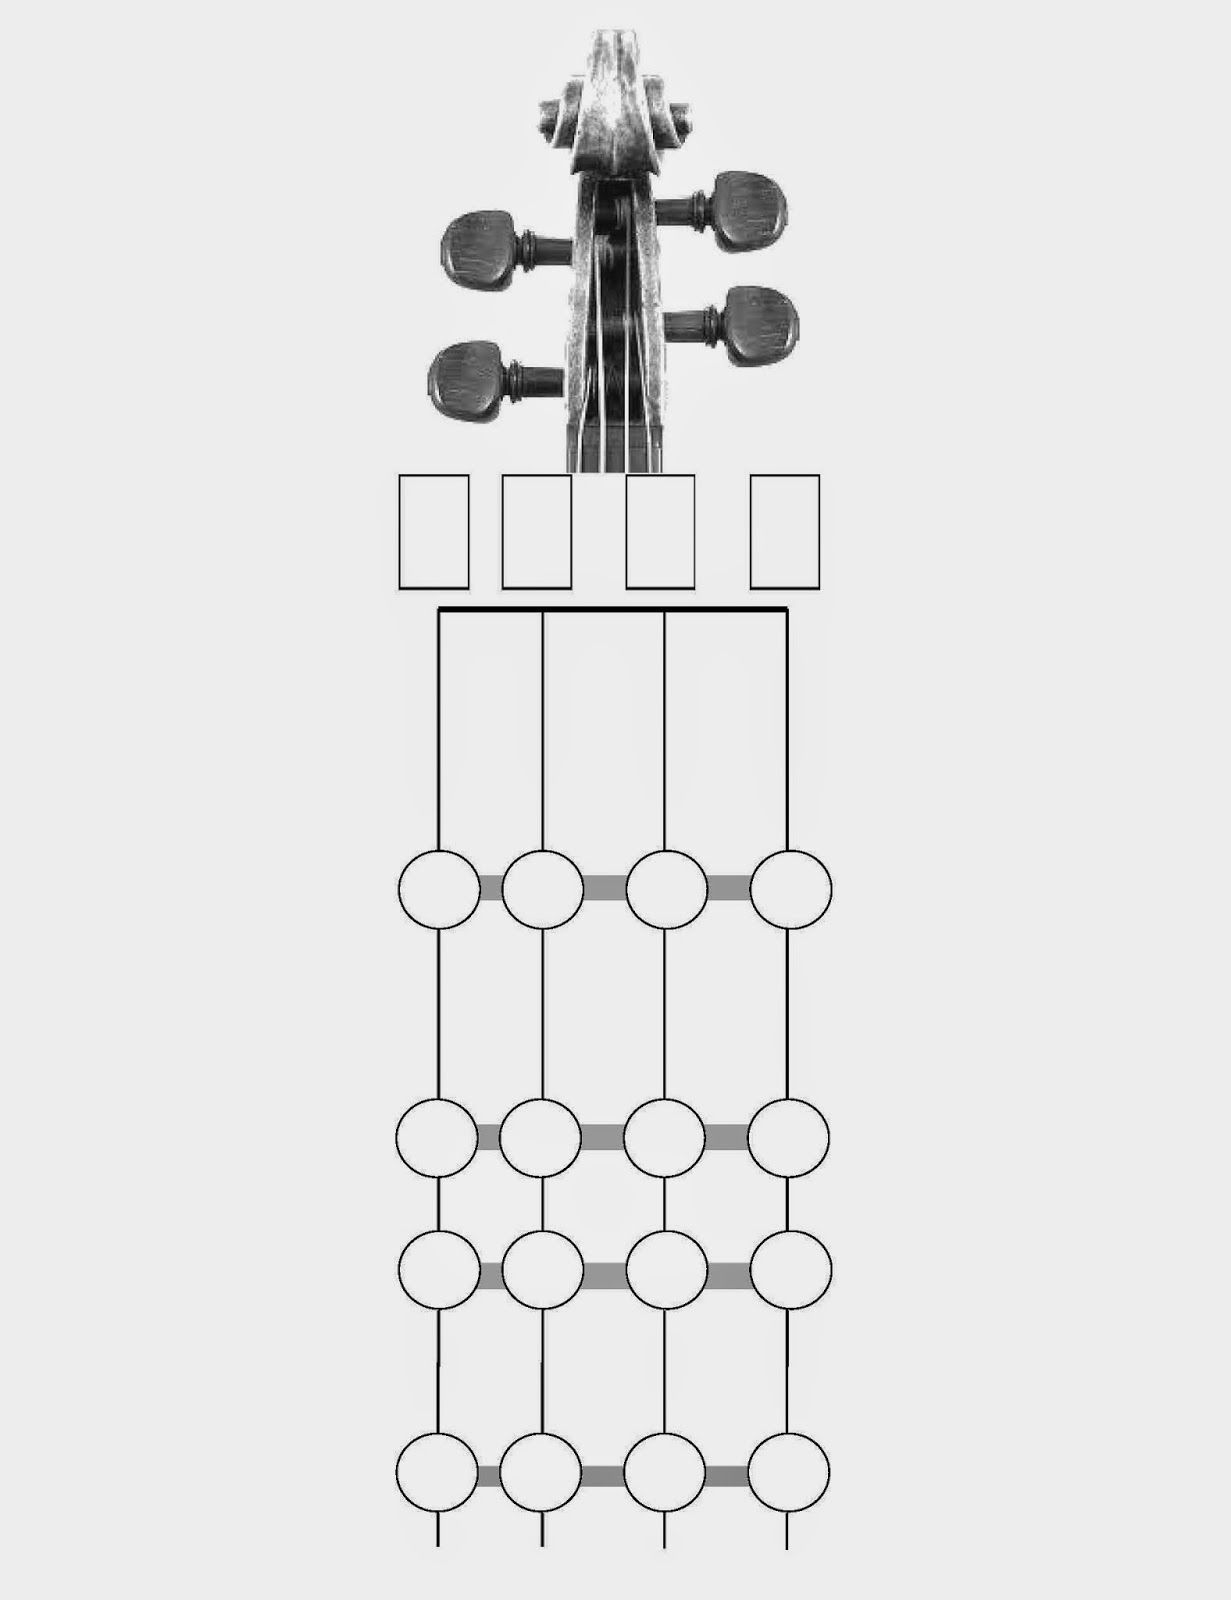 Pin By Federico Piera On Violin In